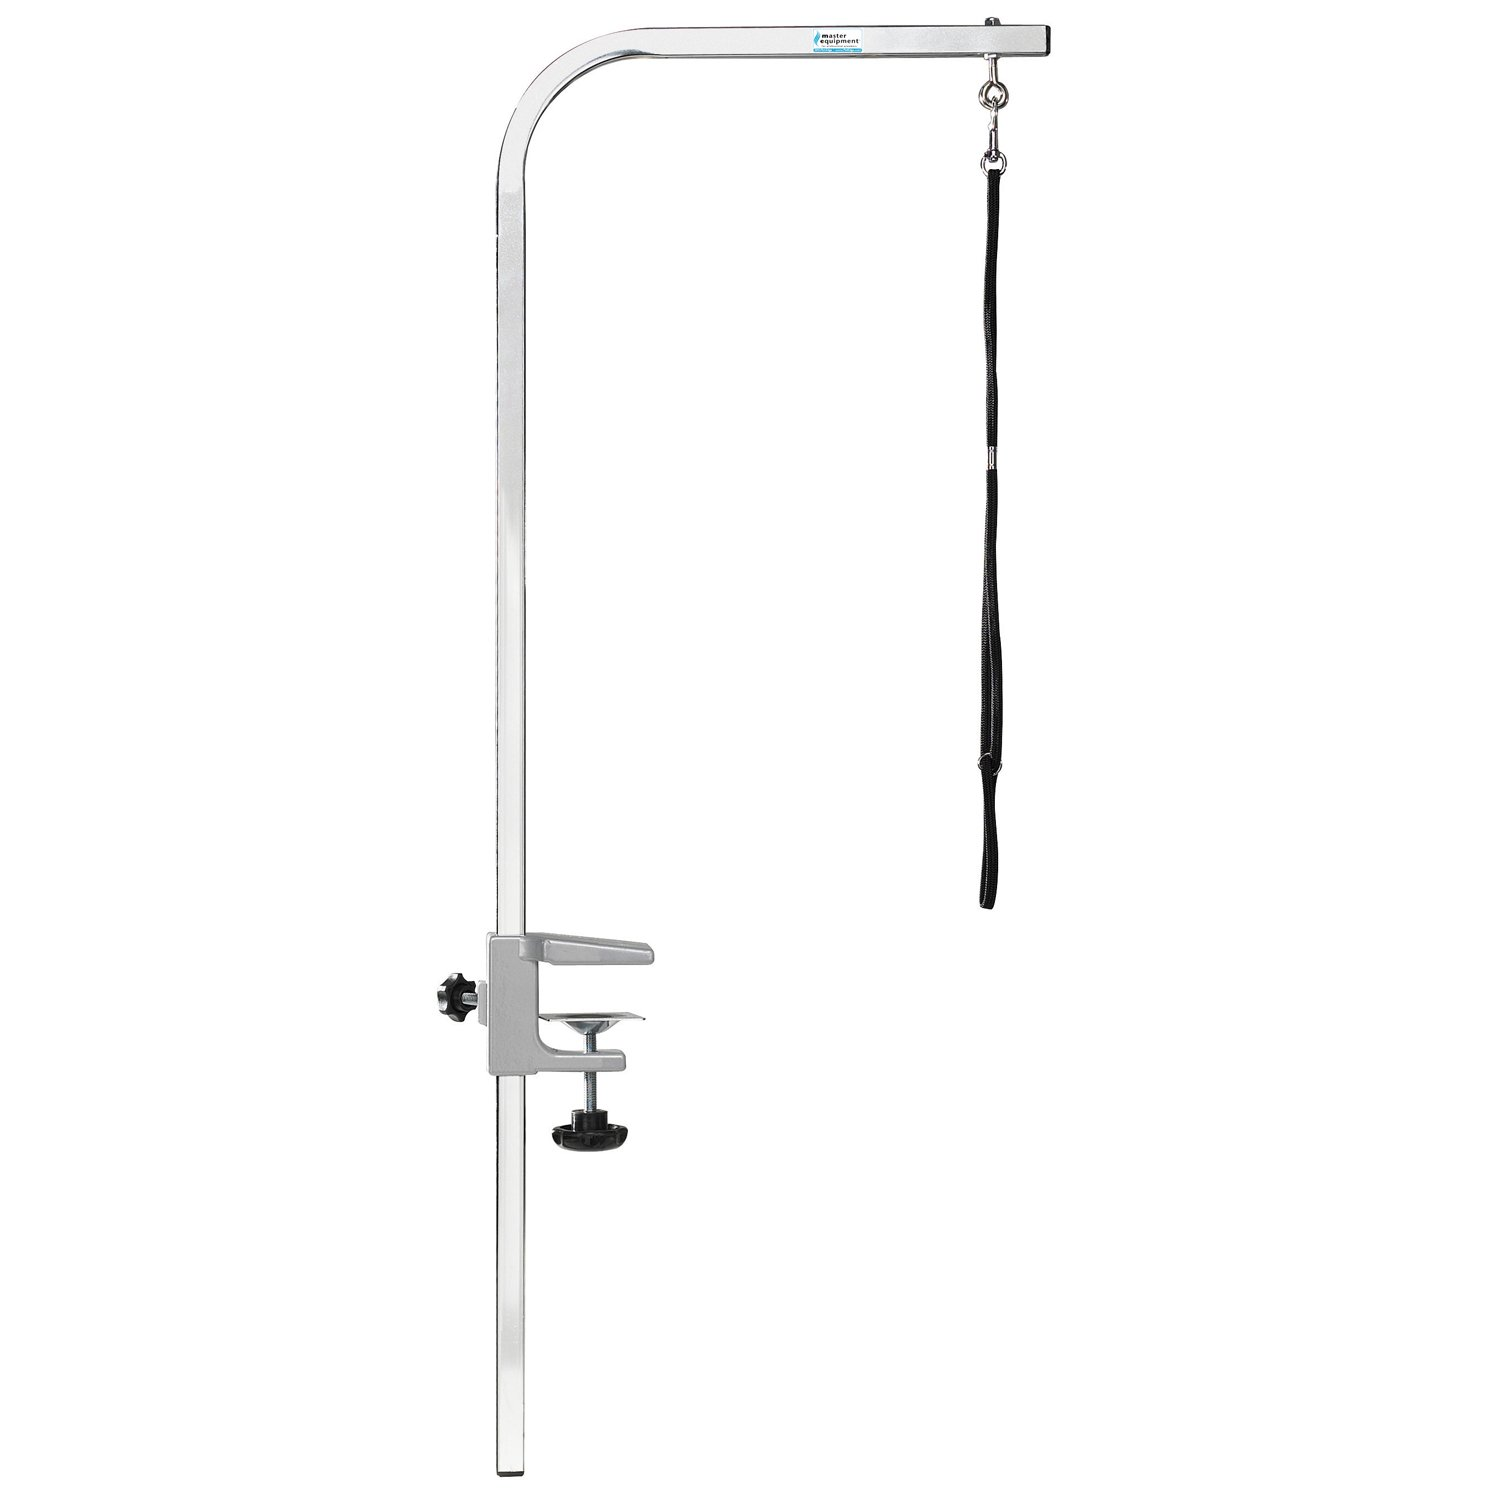 Pet Edge Master Equipment Silver Aluminum Pet Grooming Arm & Clamp - Adjustable Height to 36'', Fits Most Grooming Tables